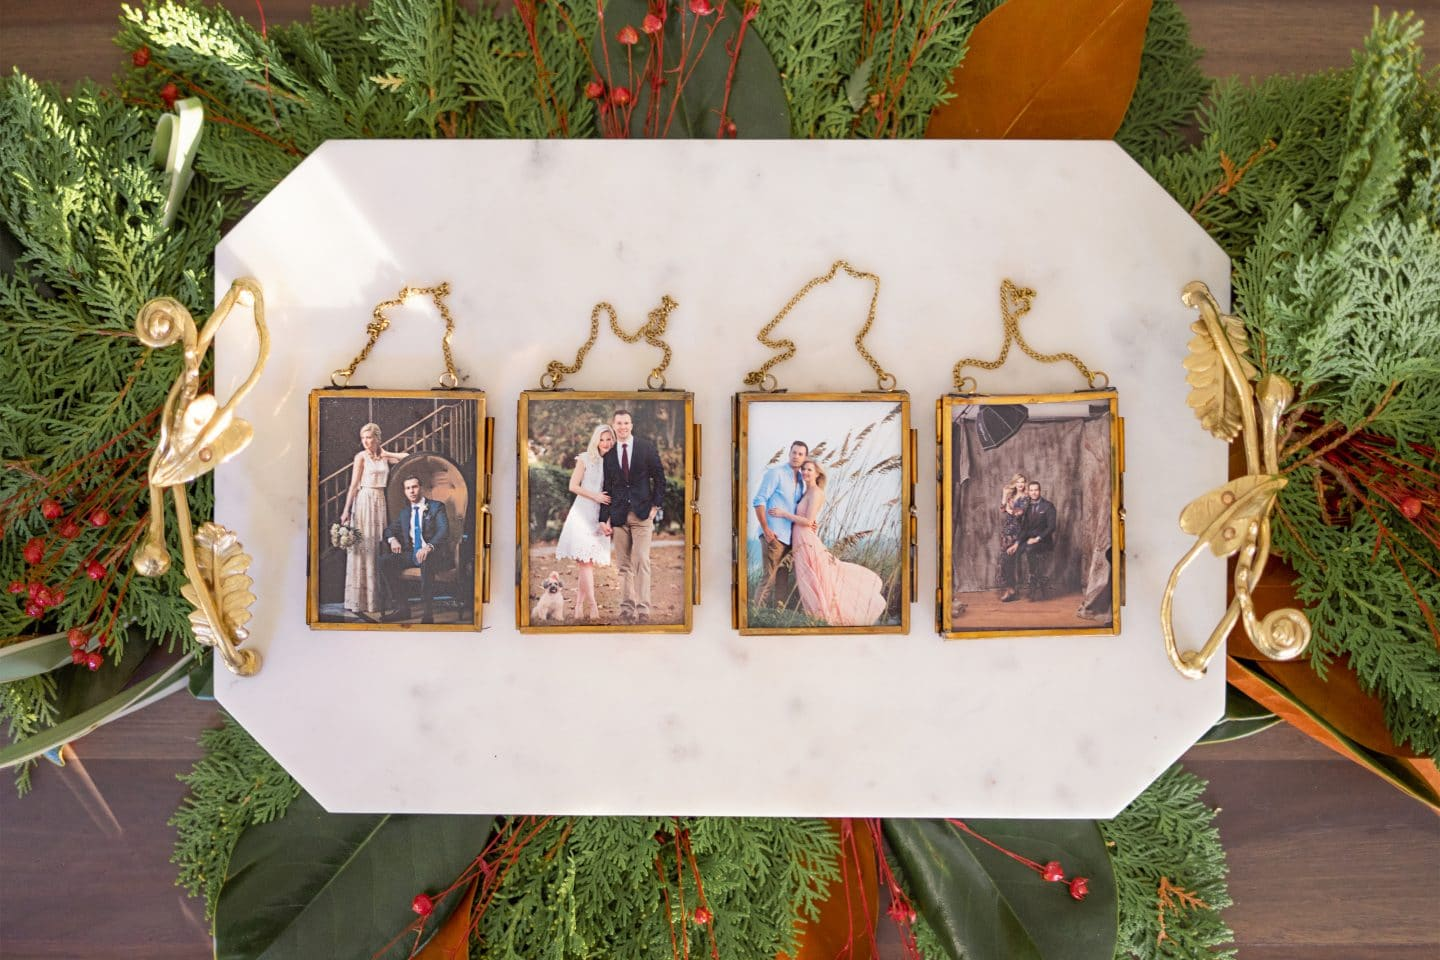 Our Christmas Card Ornament Tradition